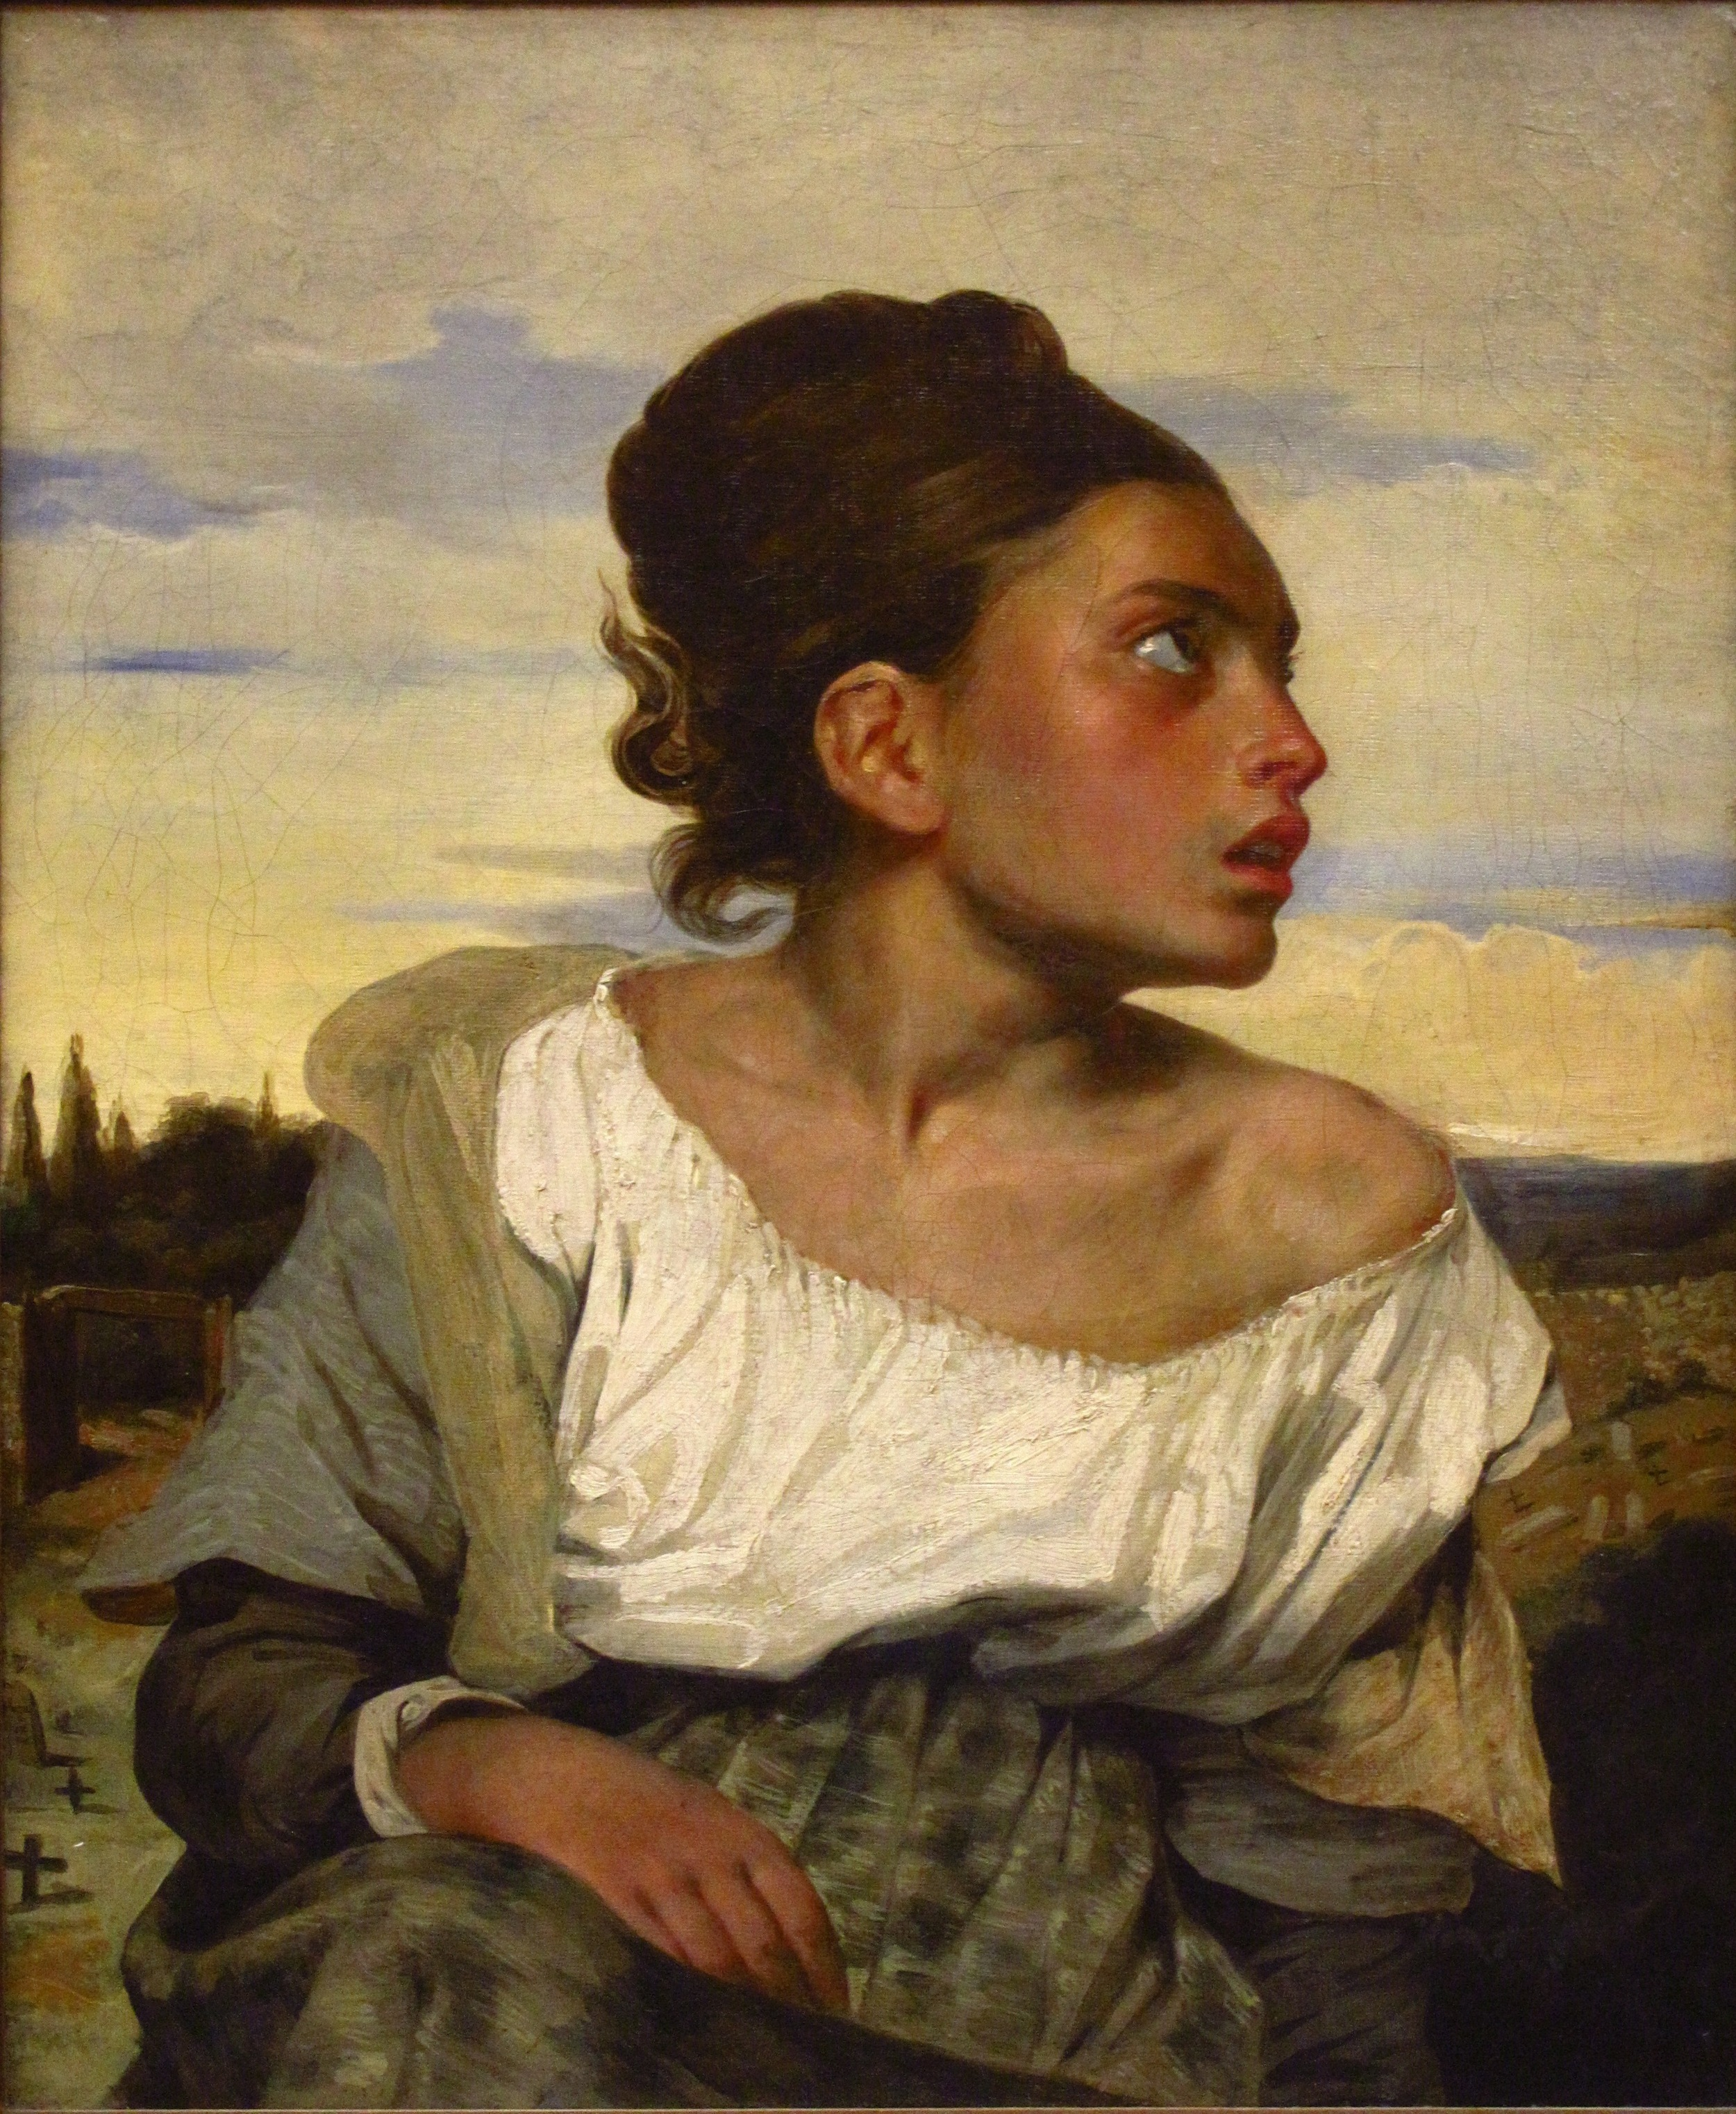 Eugene Delacroix, Orphan Girl at the Cemetery,  c. 1823-1824, Oil on canvas